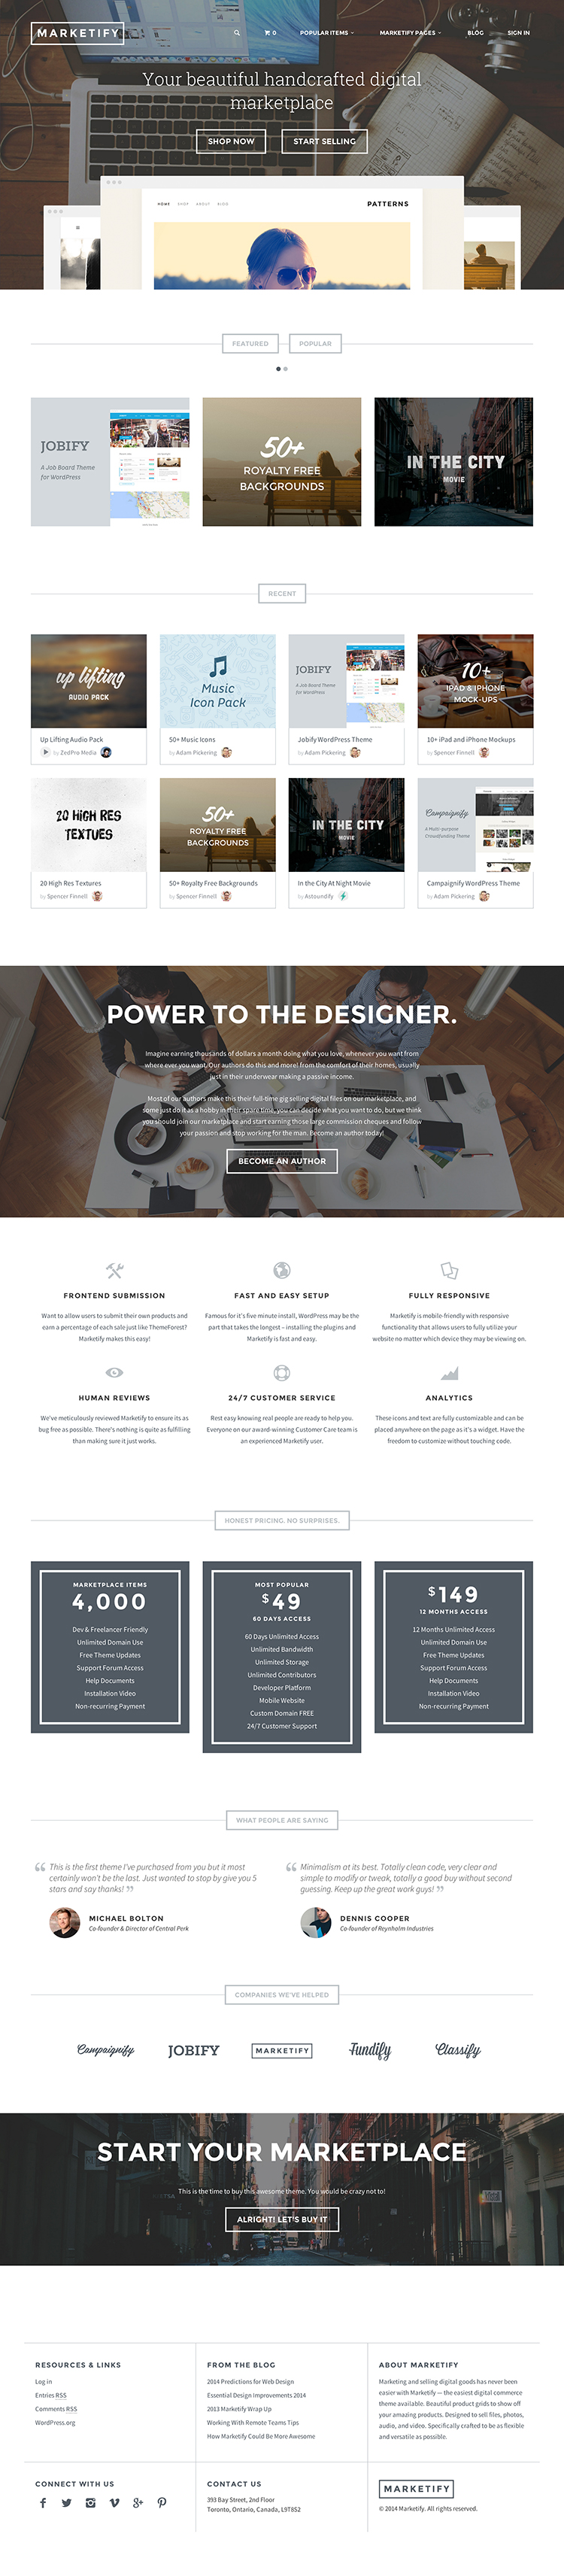 Marketify is a WordPress theme that allows you to create a online marketplace style website